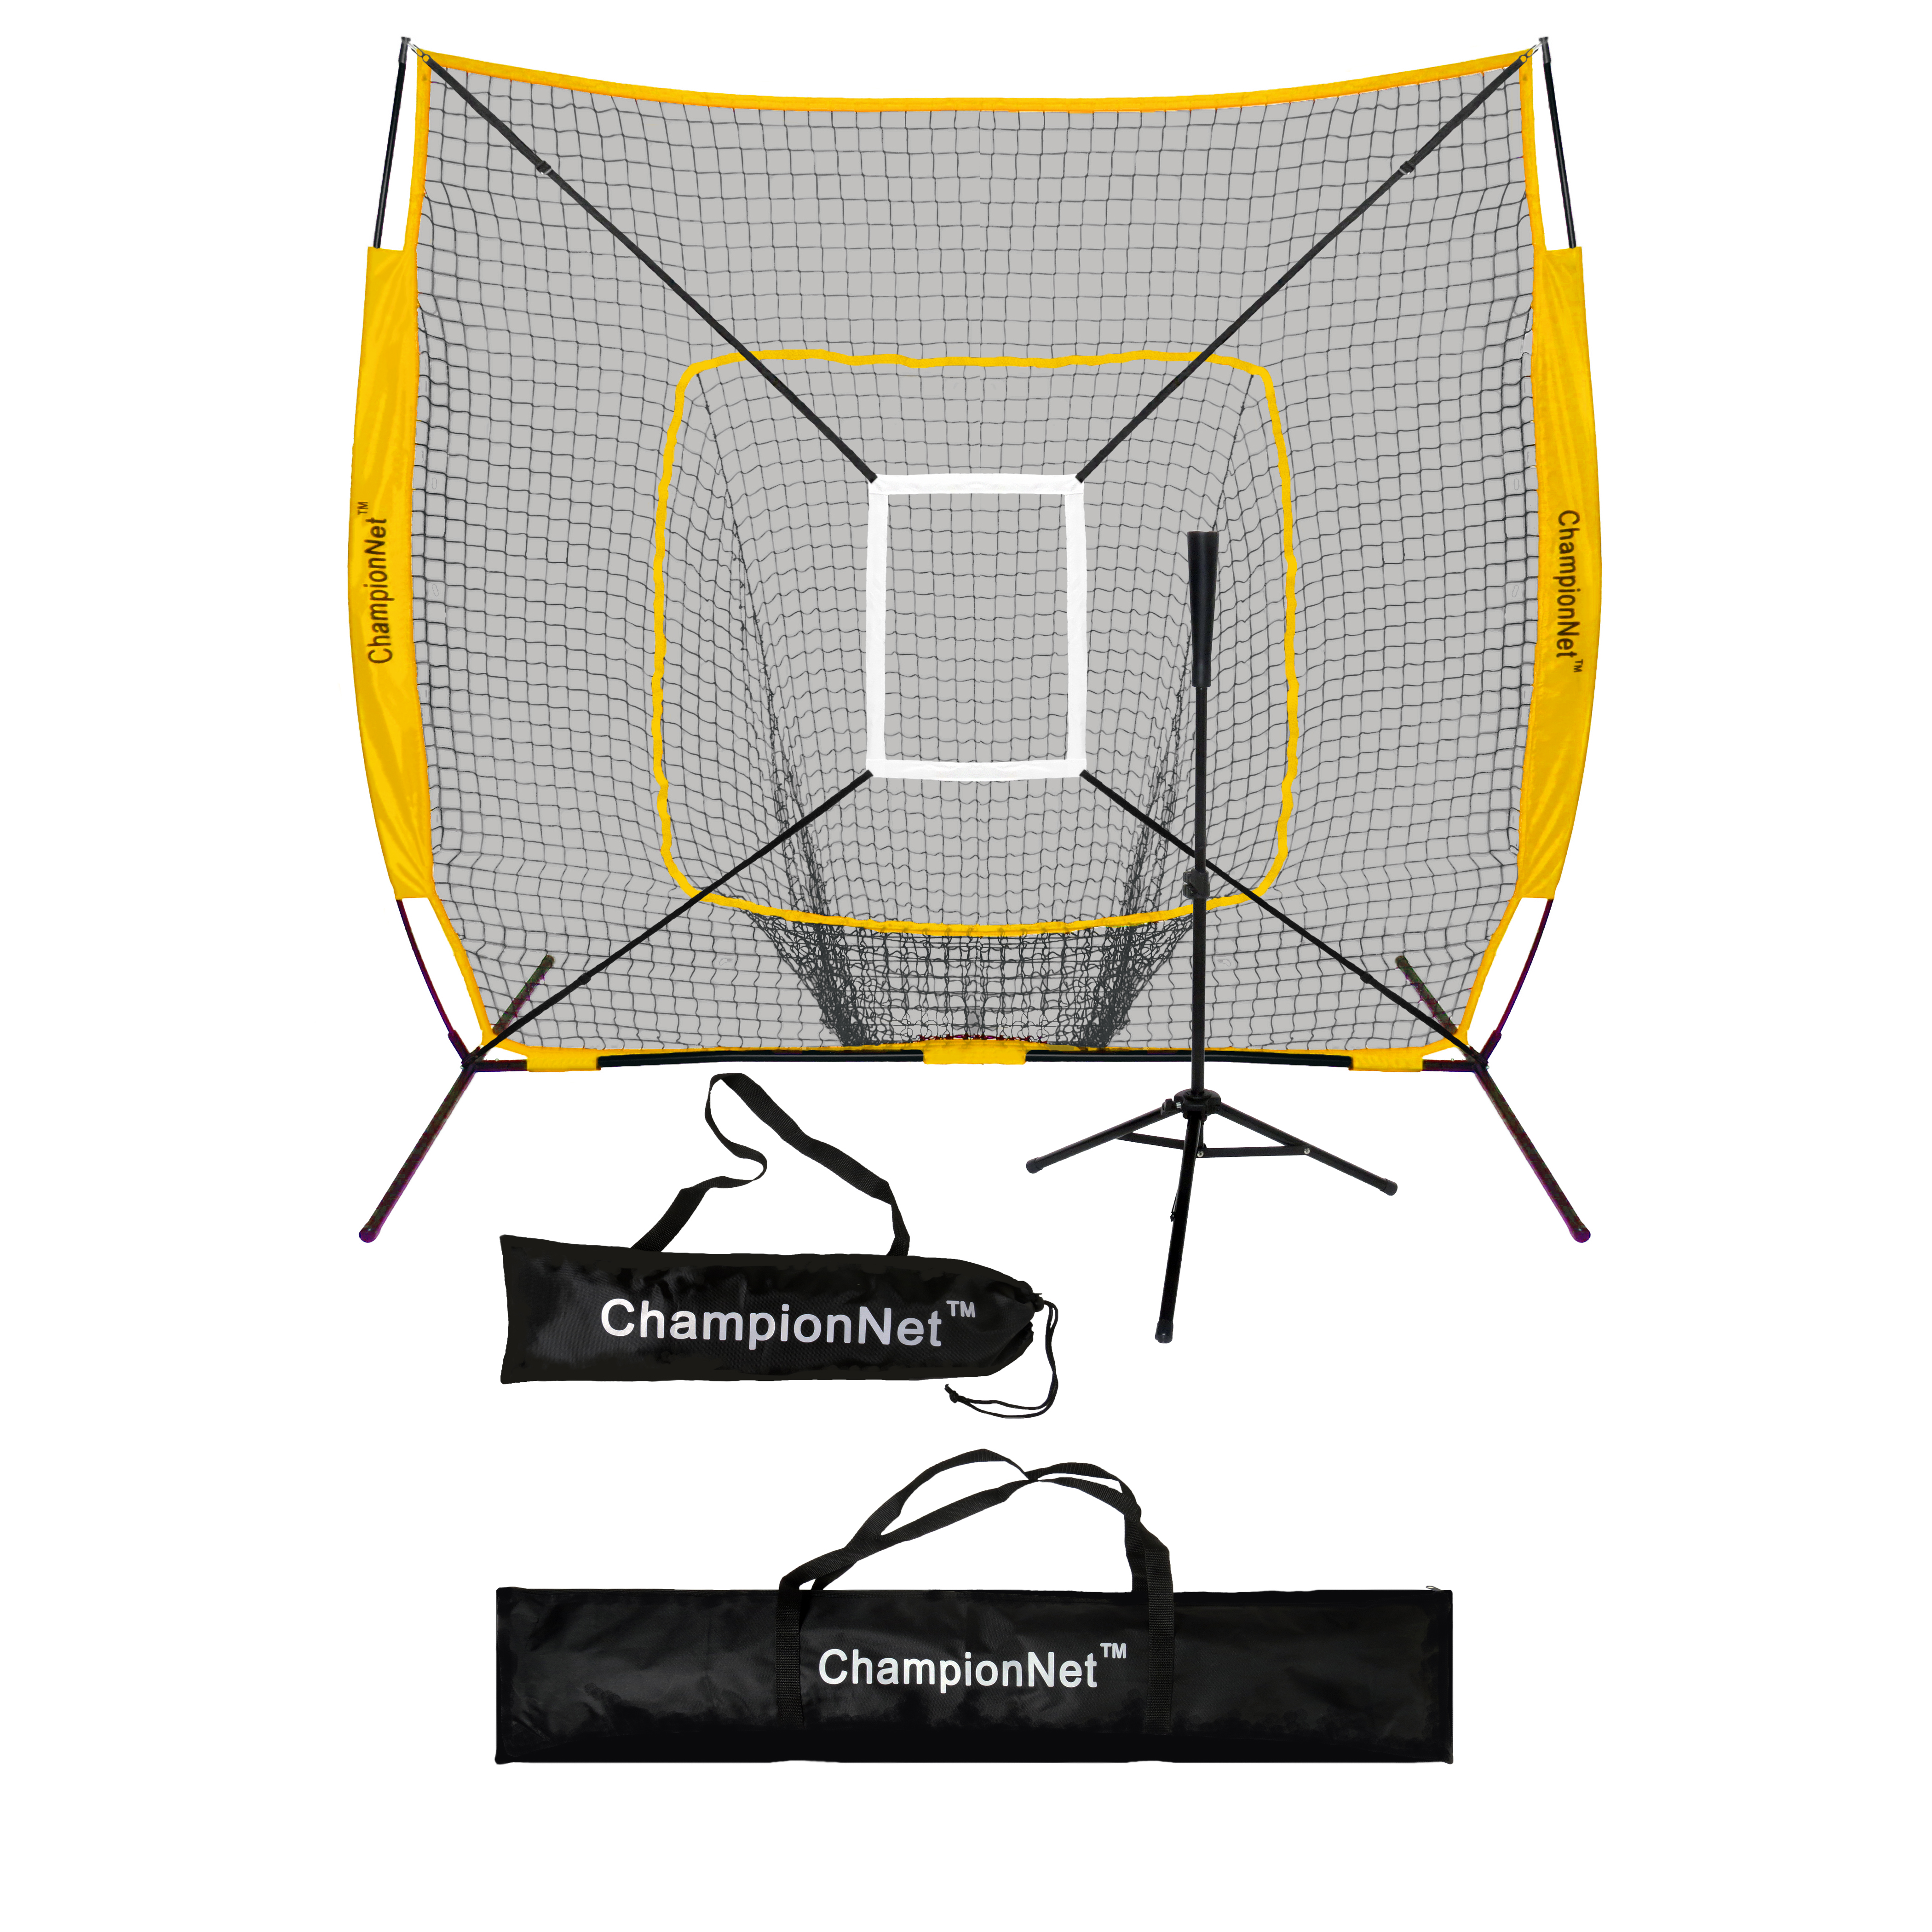 ChampionNet 7x7 Baseball/Softball Training Hitting Net & Frame Power Bow Style Net w/ Carry Bag + Batting Tee + Strike Zone Target Attachment - YELLOW